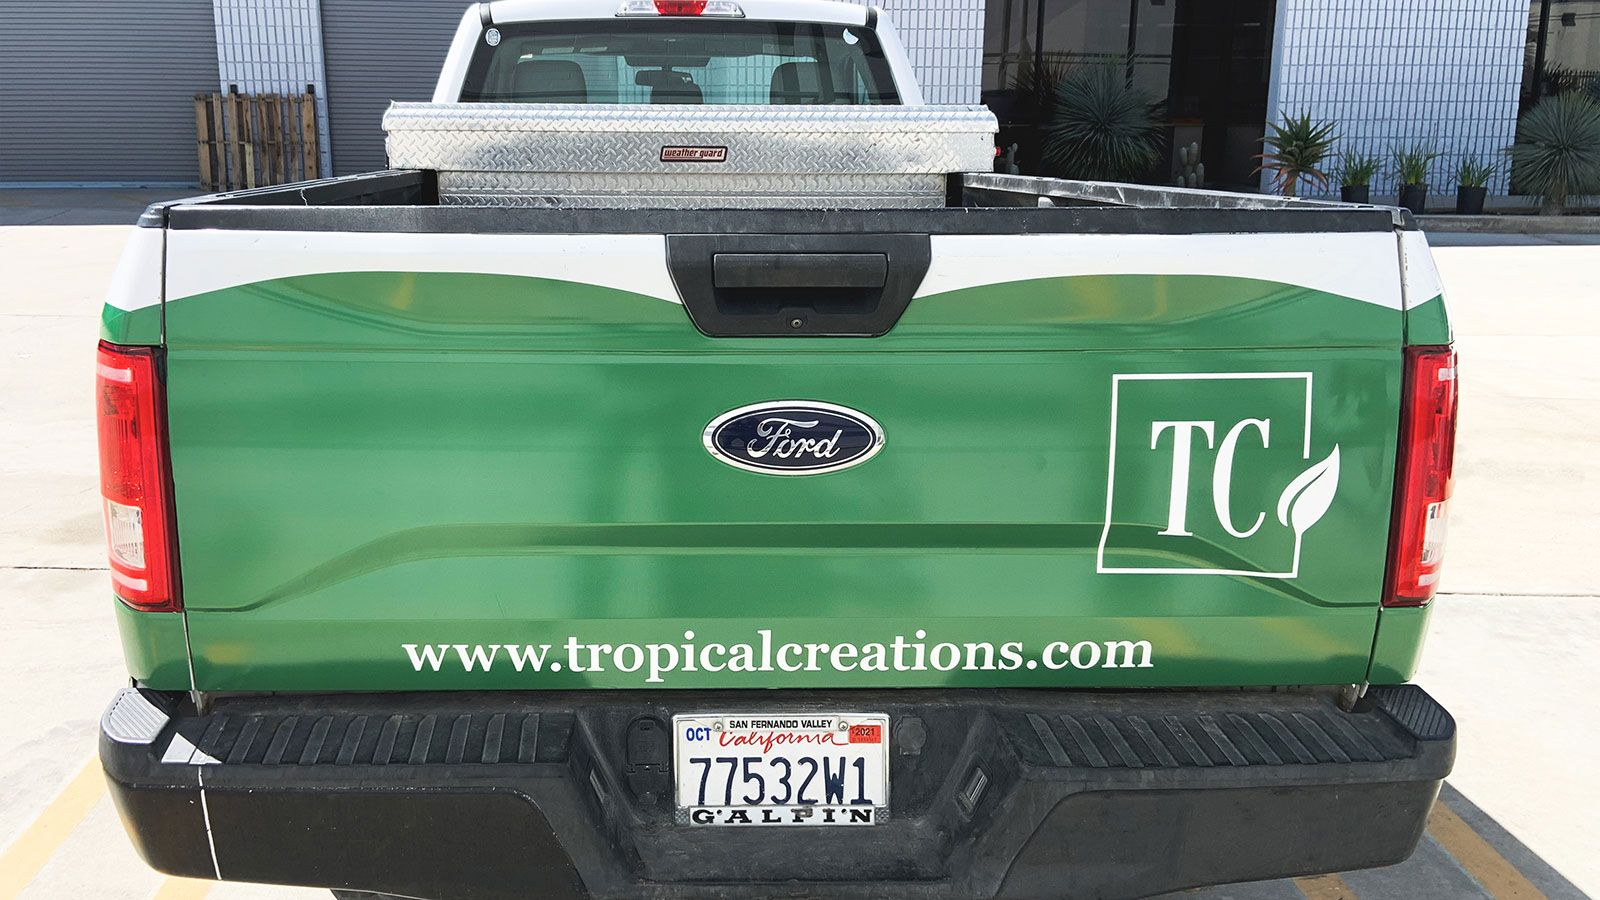 Tropical creations truck decals